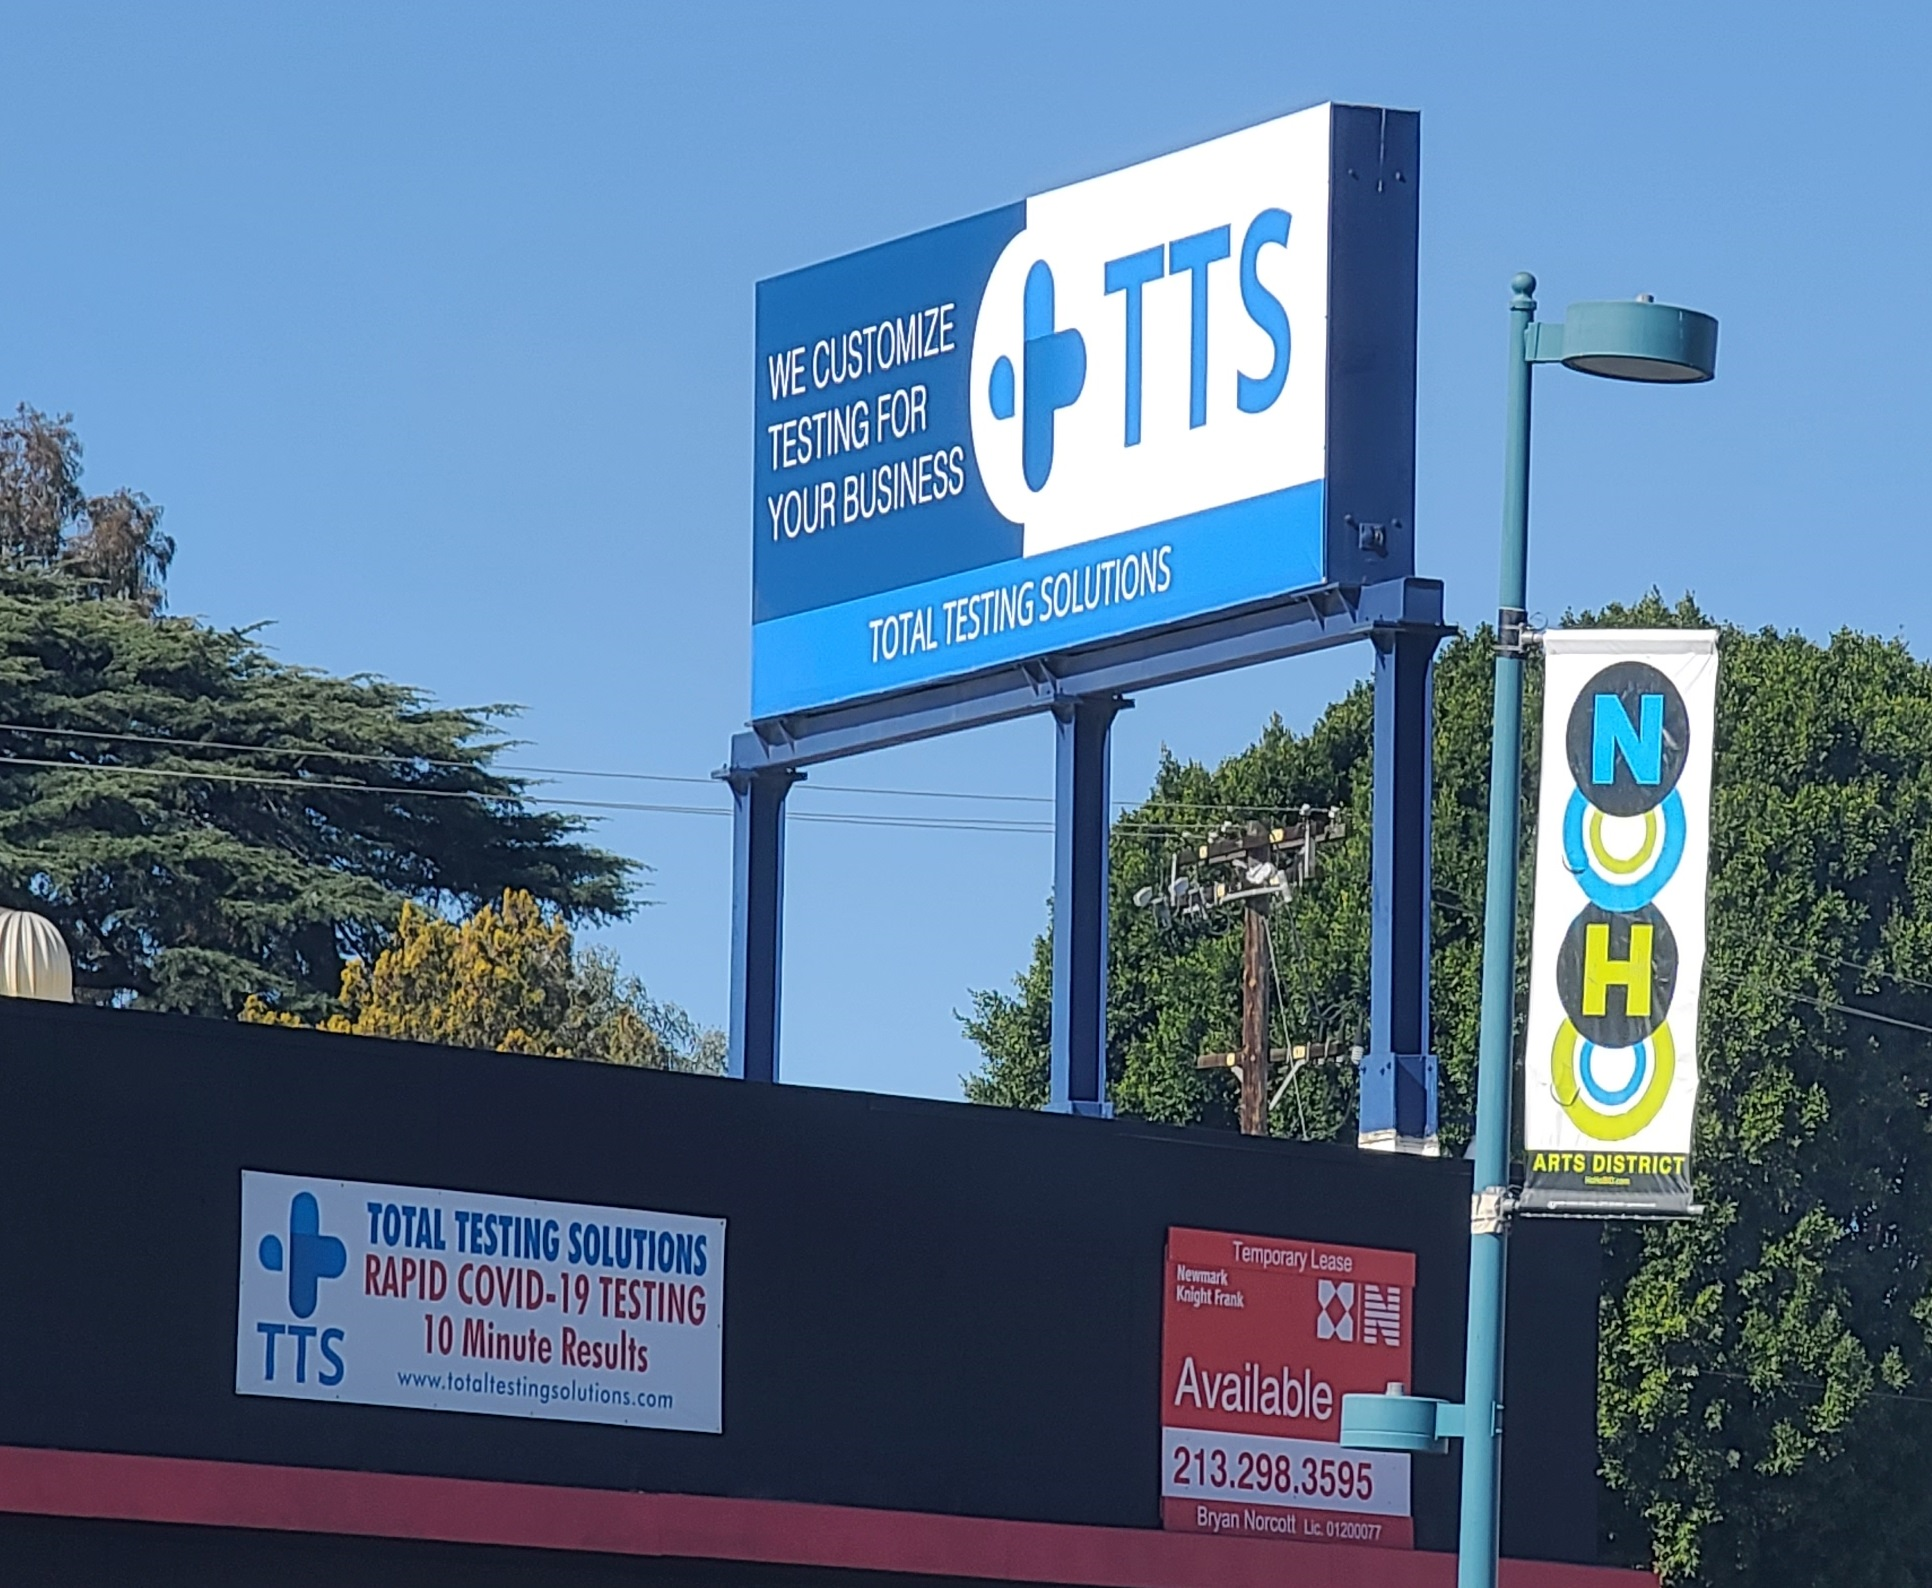 For this custom banner for Total Testing Solutions' North Hollywood location we wrapped an existing lightbox with to use the pylon sign's vantage point to the banner's advantage. It fits like a glove!